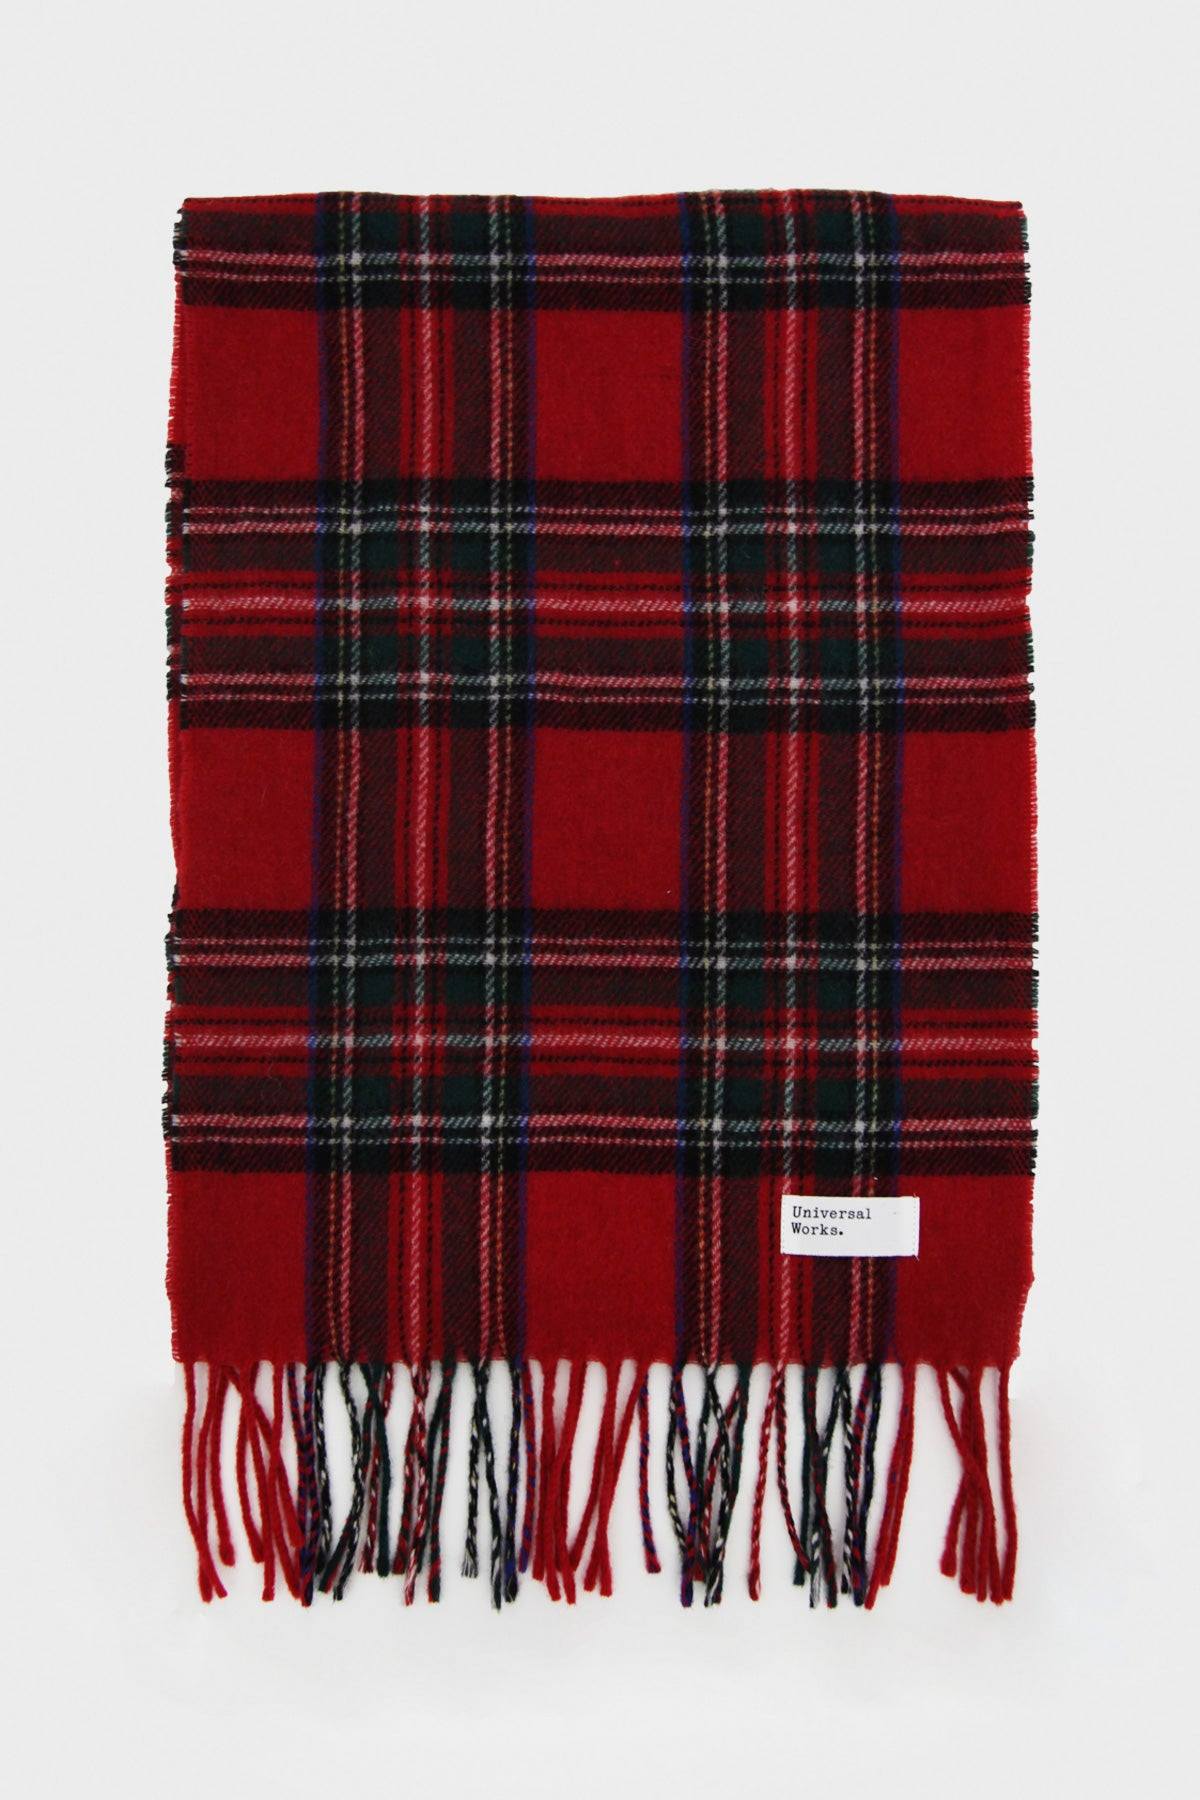 Universal Works - Scarf - Red - Canoe Club